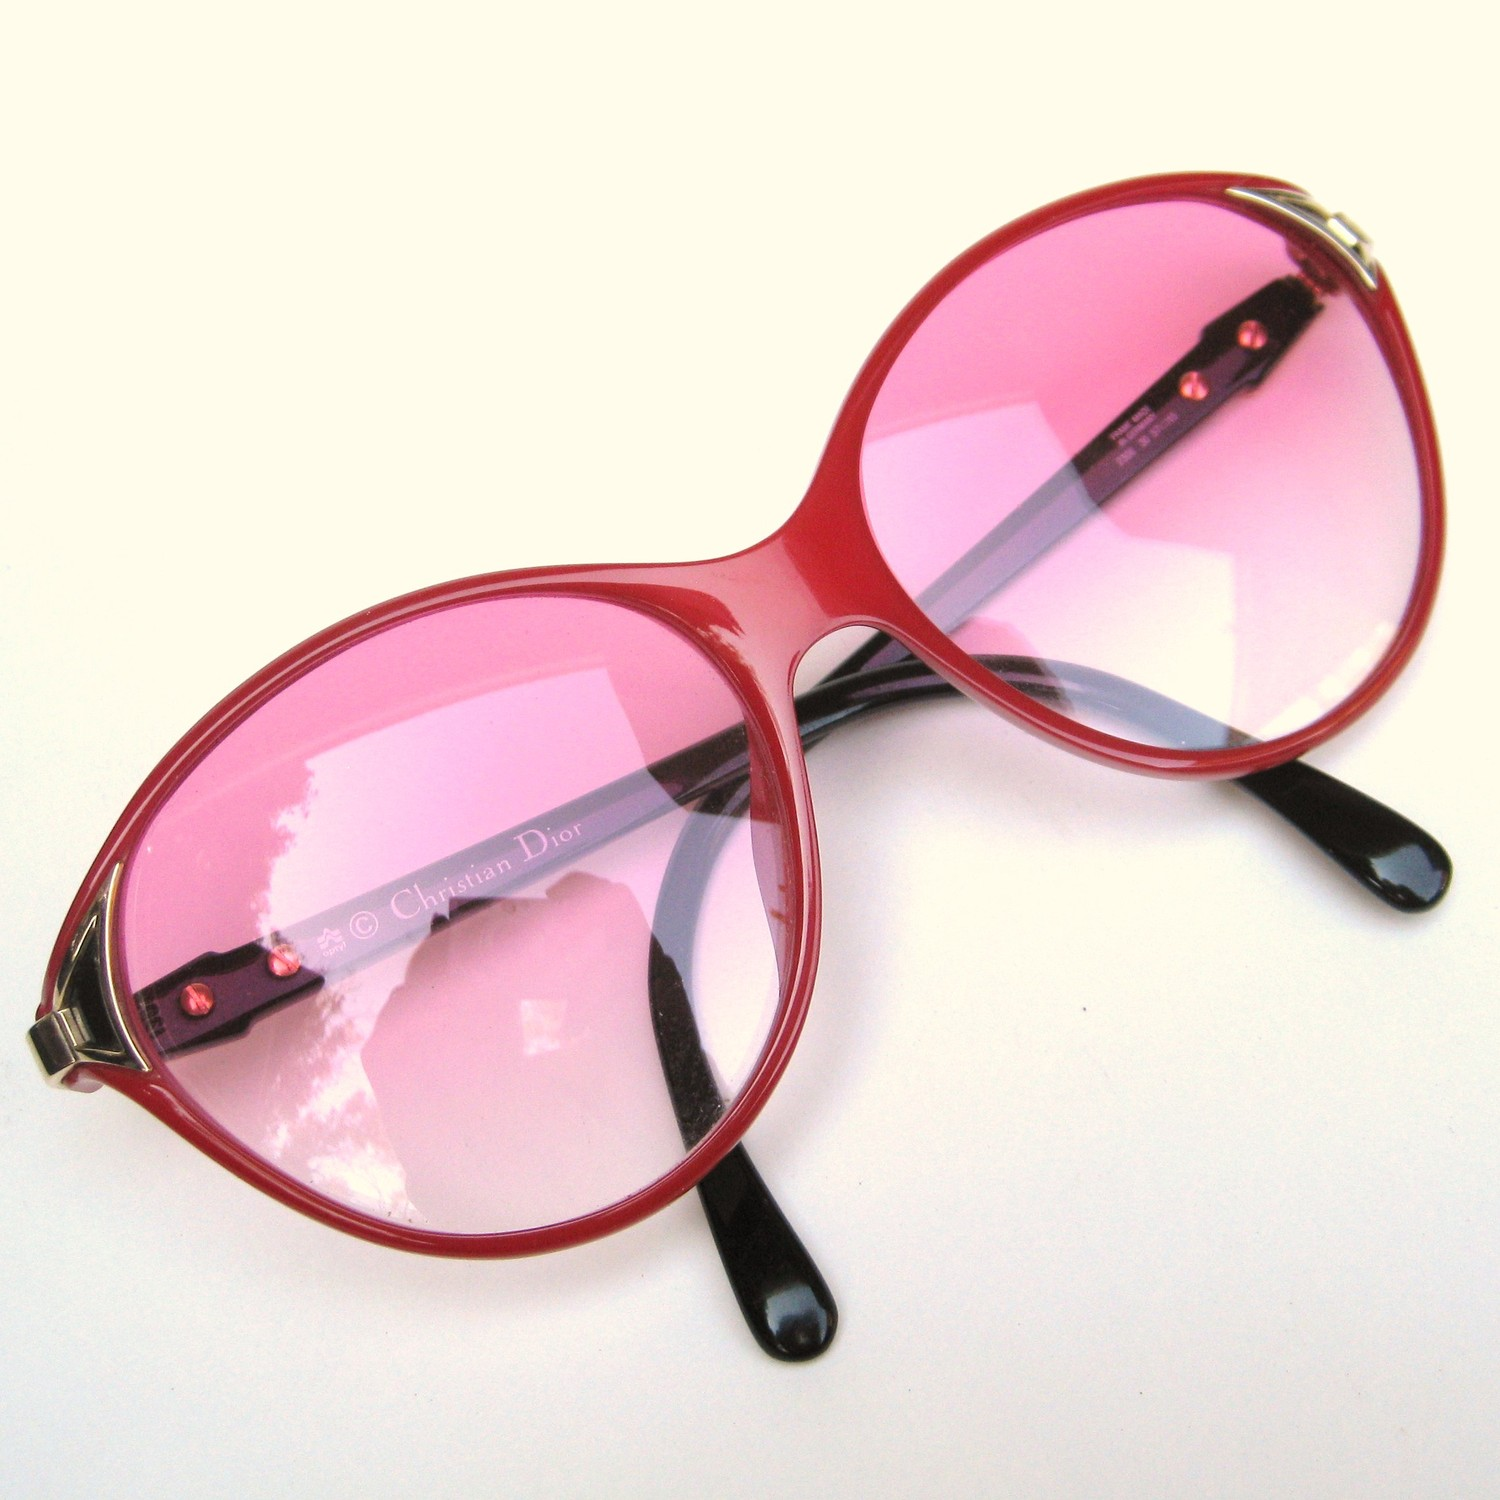 Job change with rose colored glasses